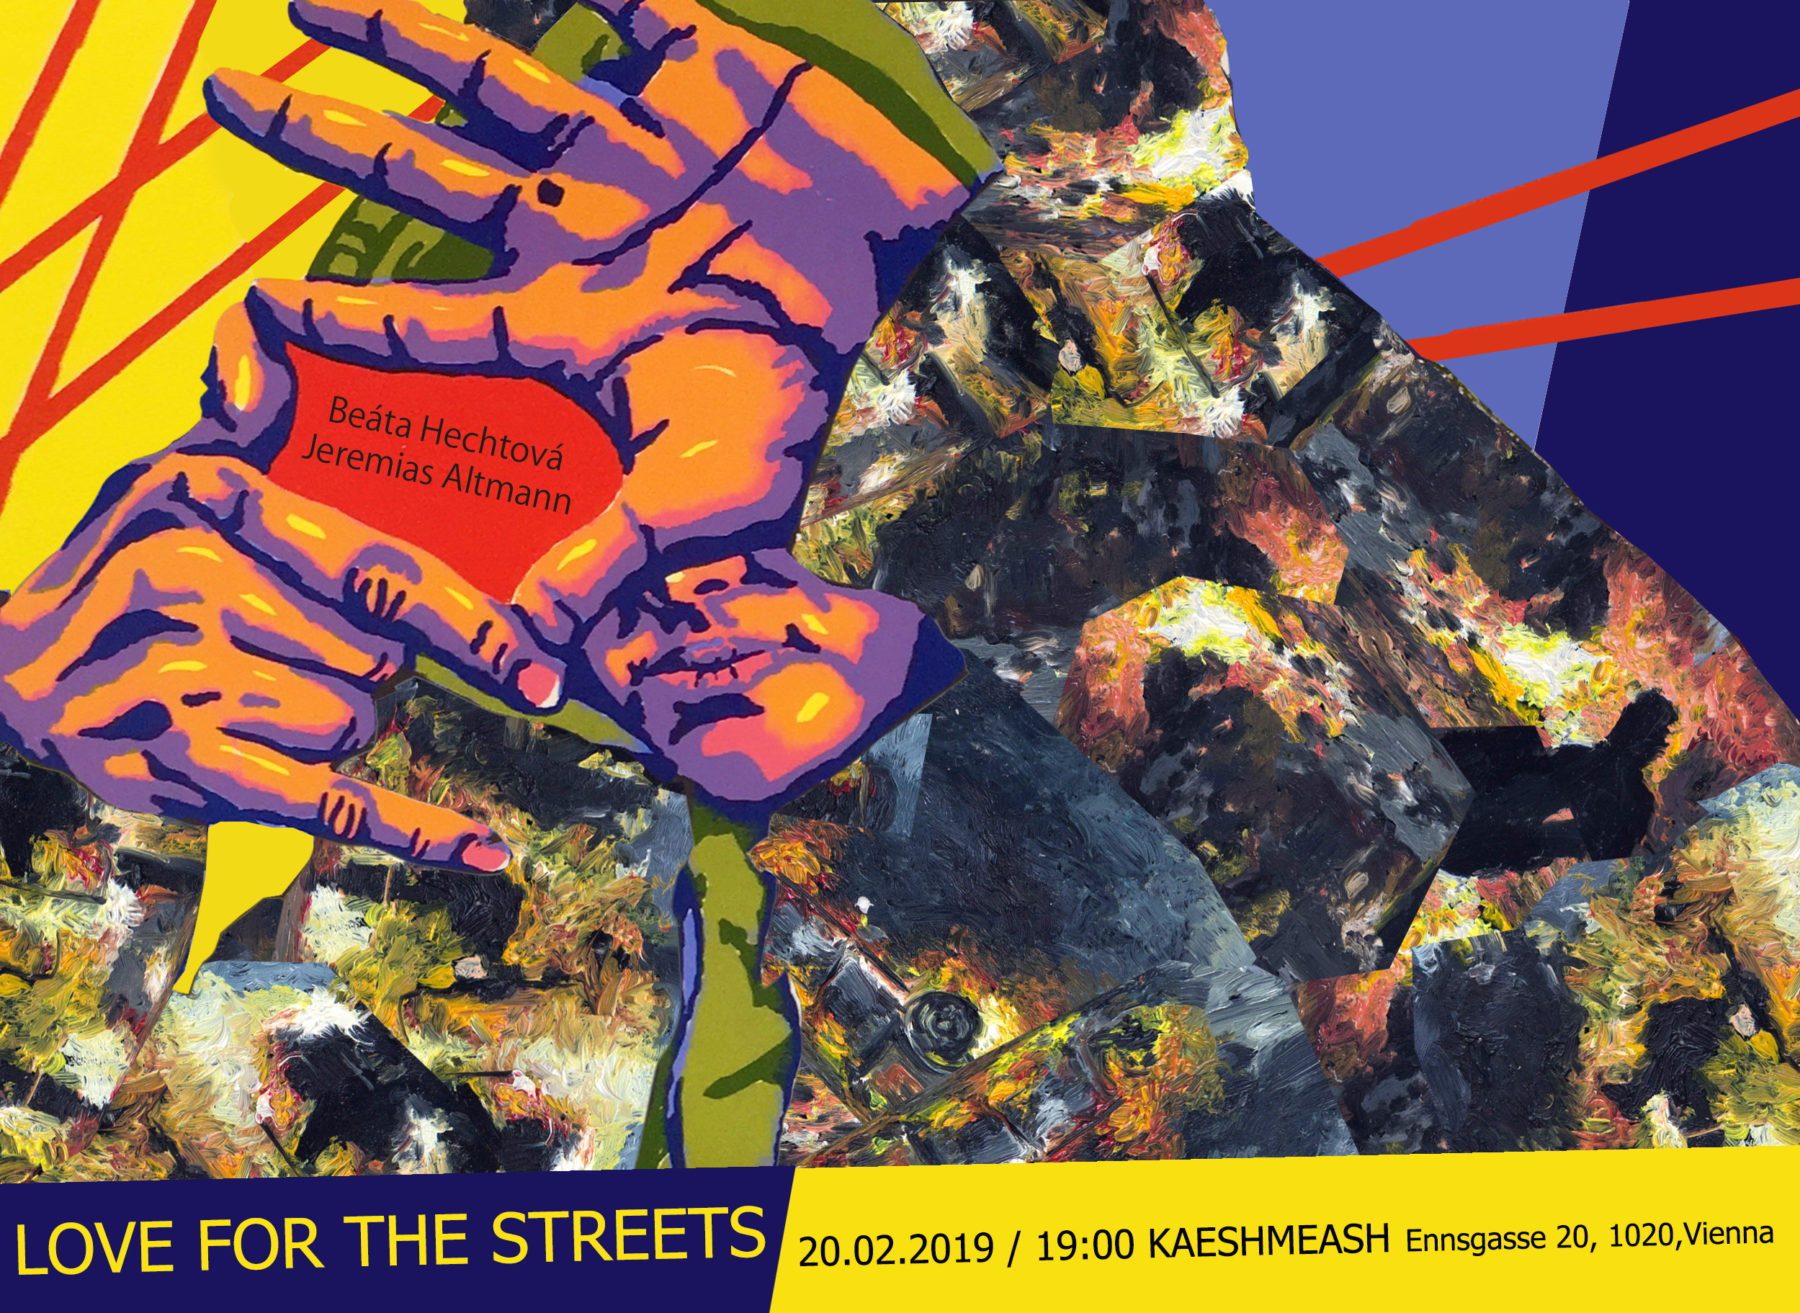 Opening: 20.02.2019 / 19:00 / KAESHMAESH / Ennsgasse 20, 1020 / Vienna